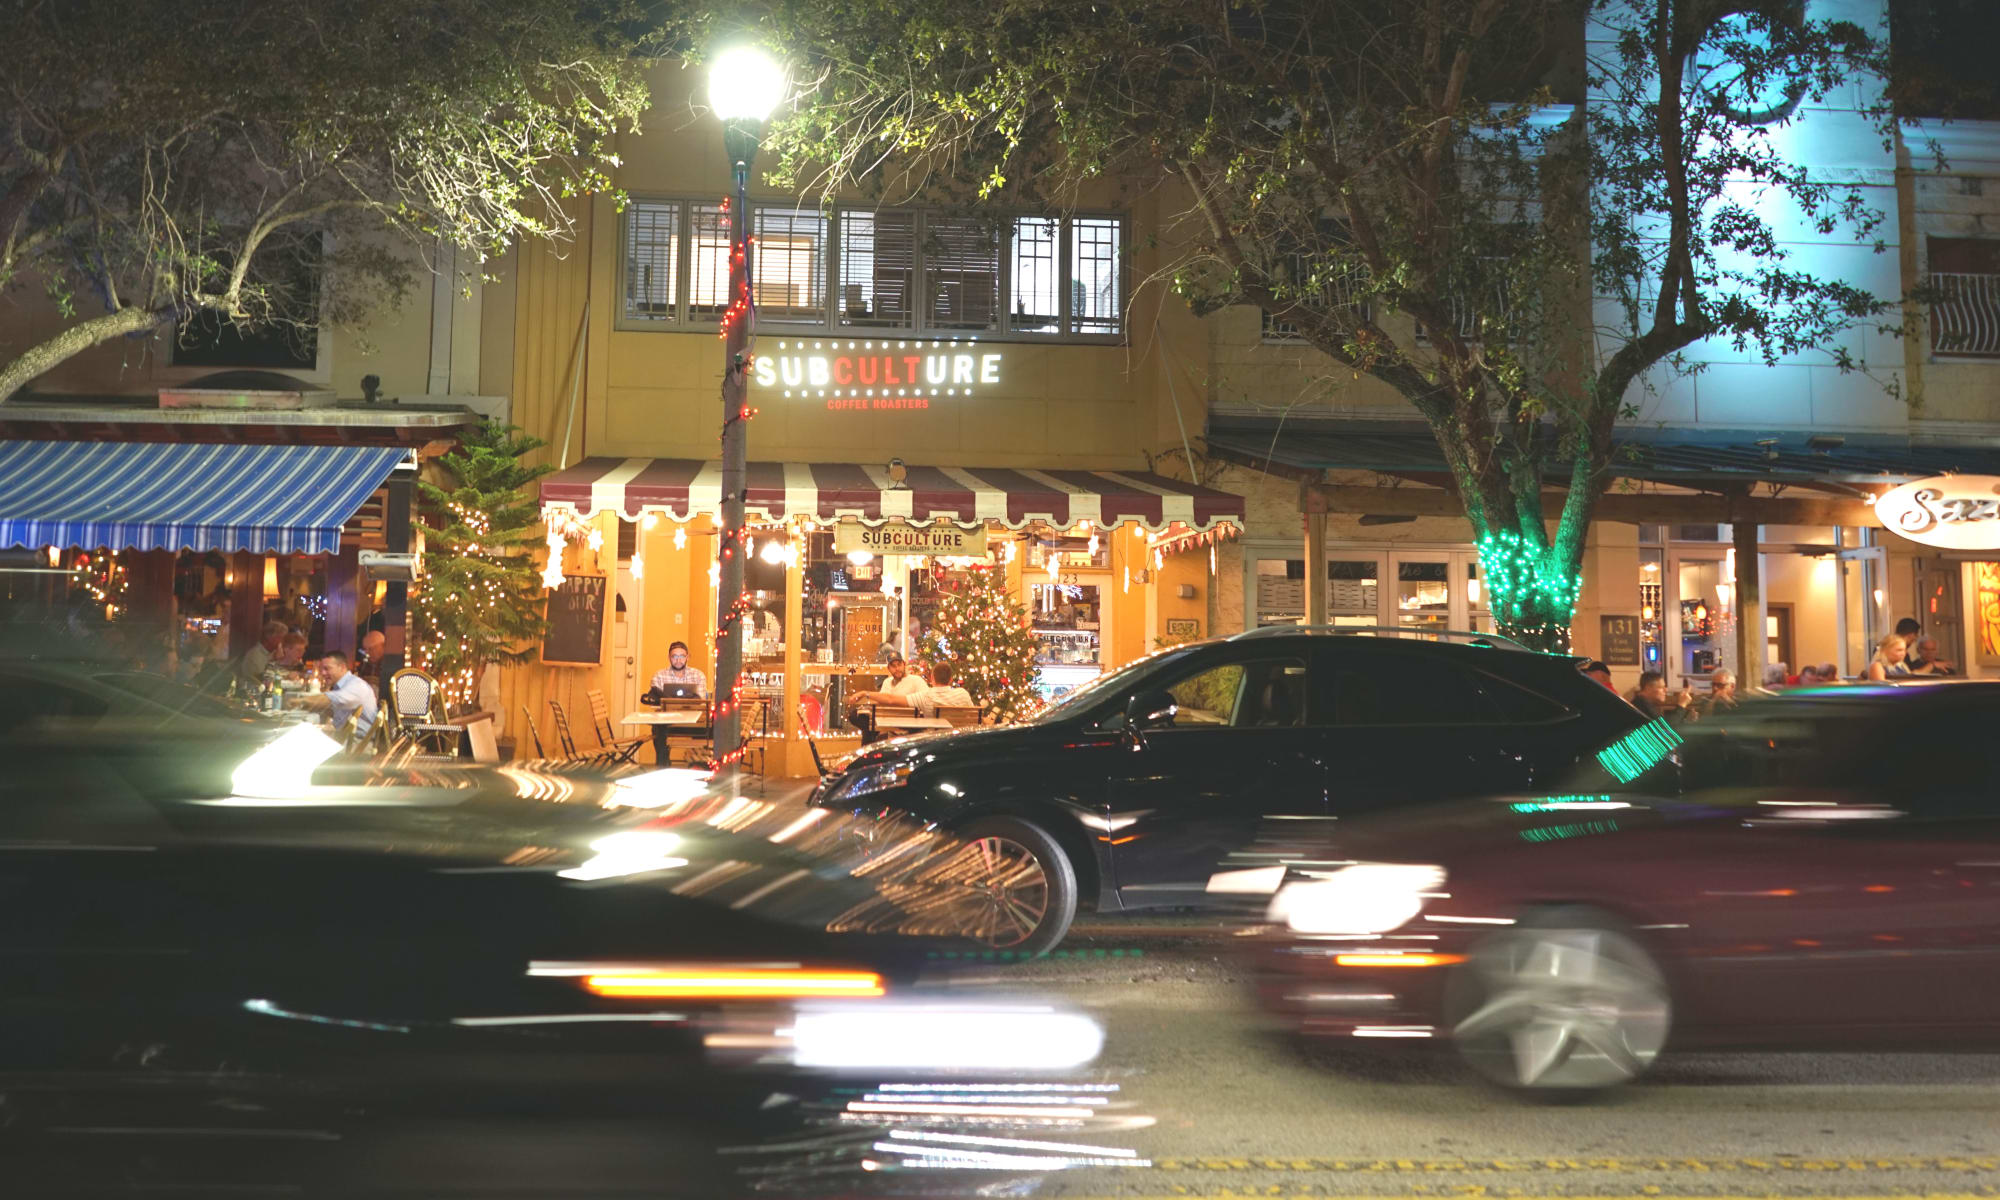 Night life around Delray Station in Delray Beach